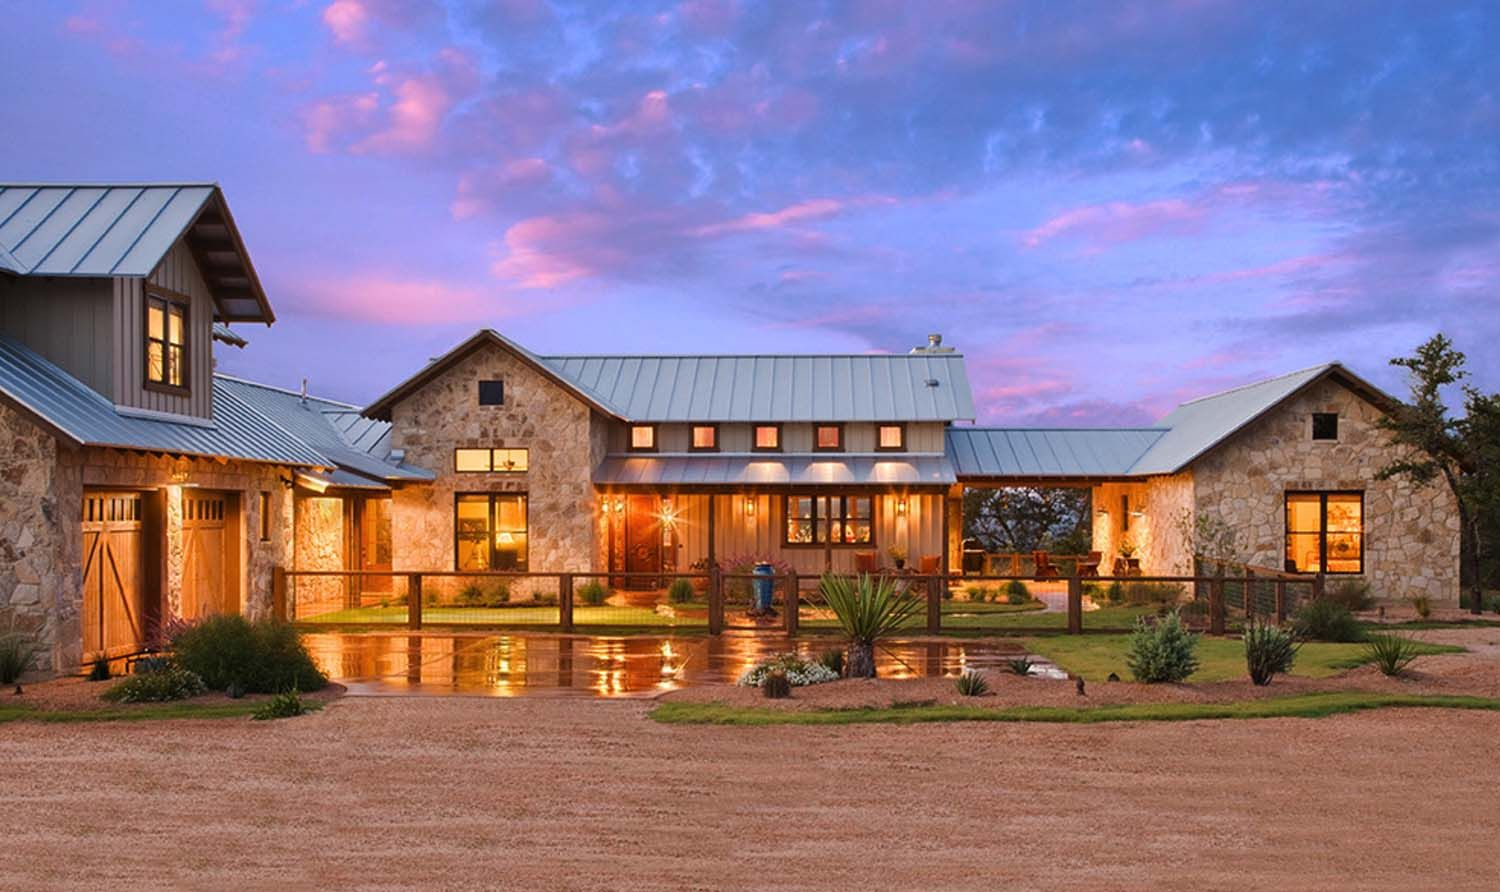 Rustic Ranch House Designed For Family Gatherings In Texas Ranch House Designs Ranch House Exterior Country House Design